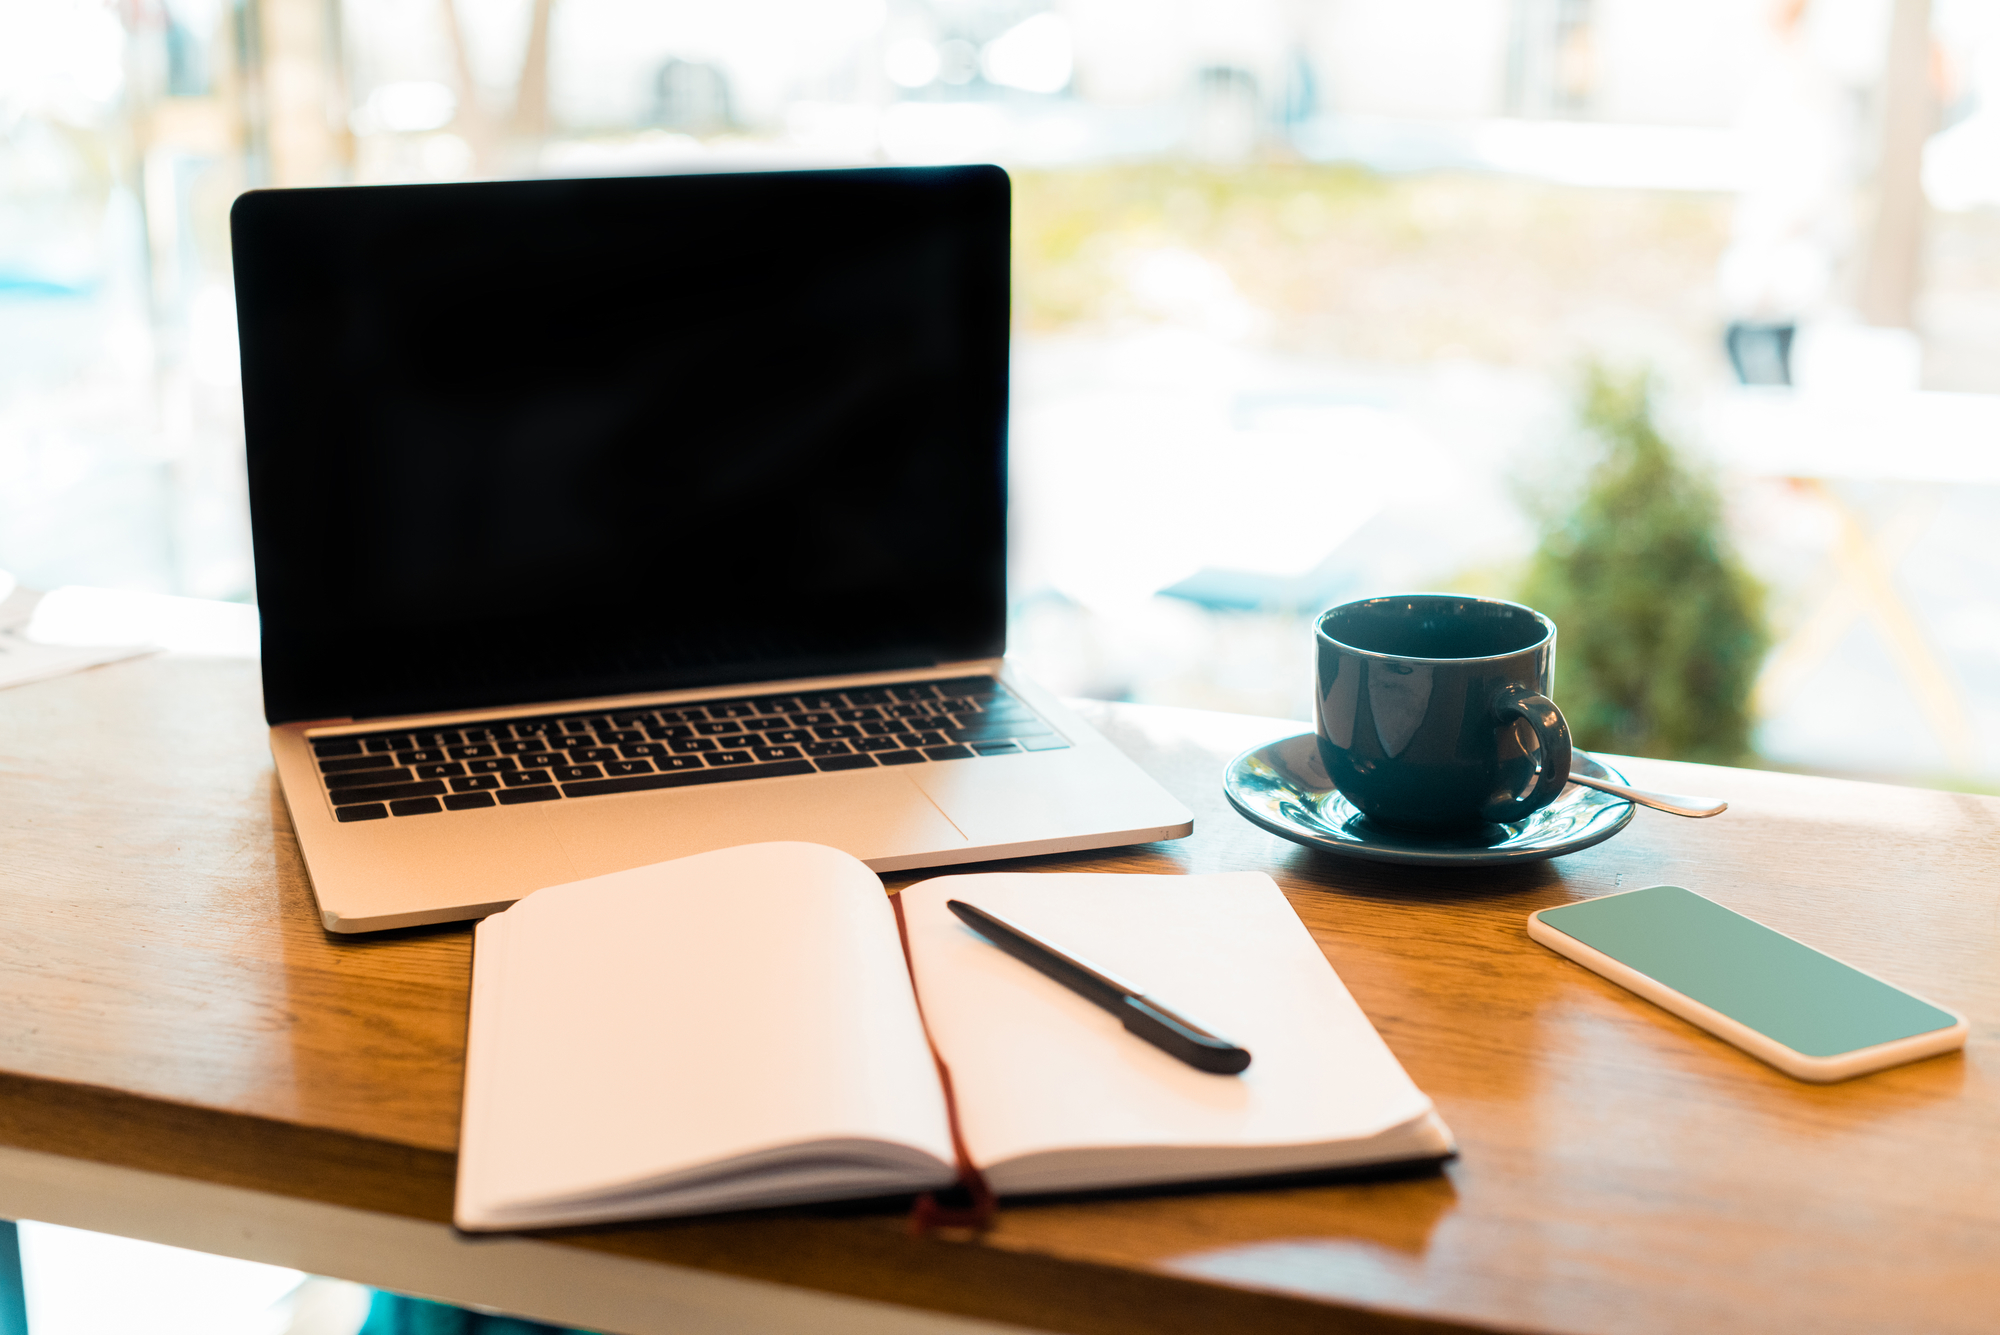 Laptop with blank screen, notebook and cup of tea on wooden cafe counter